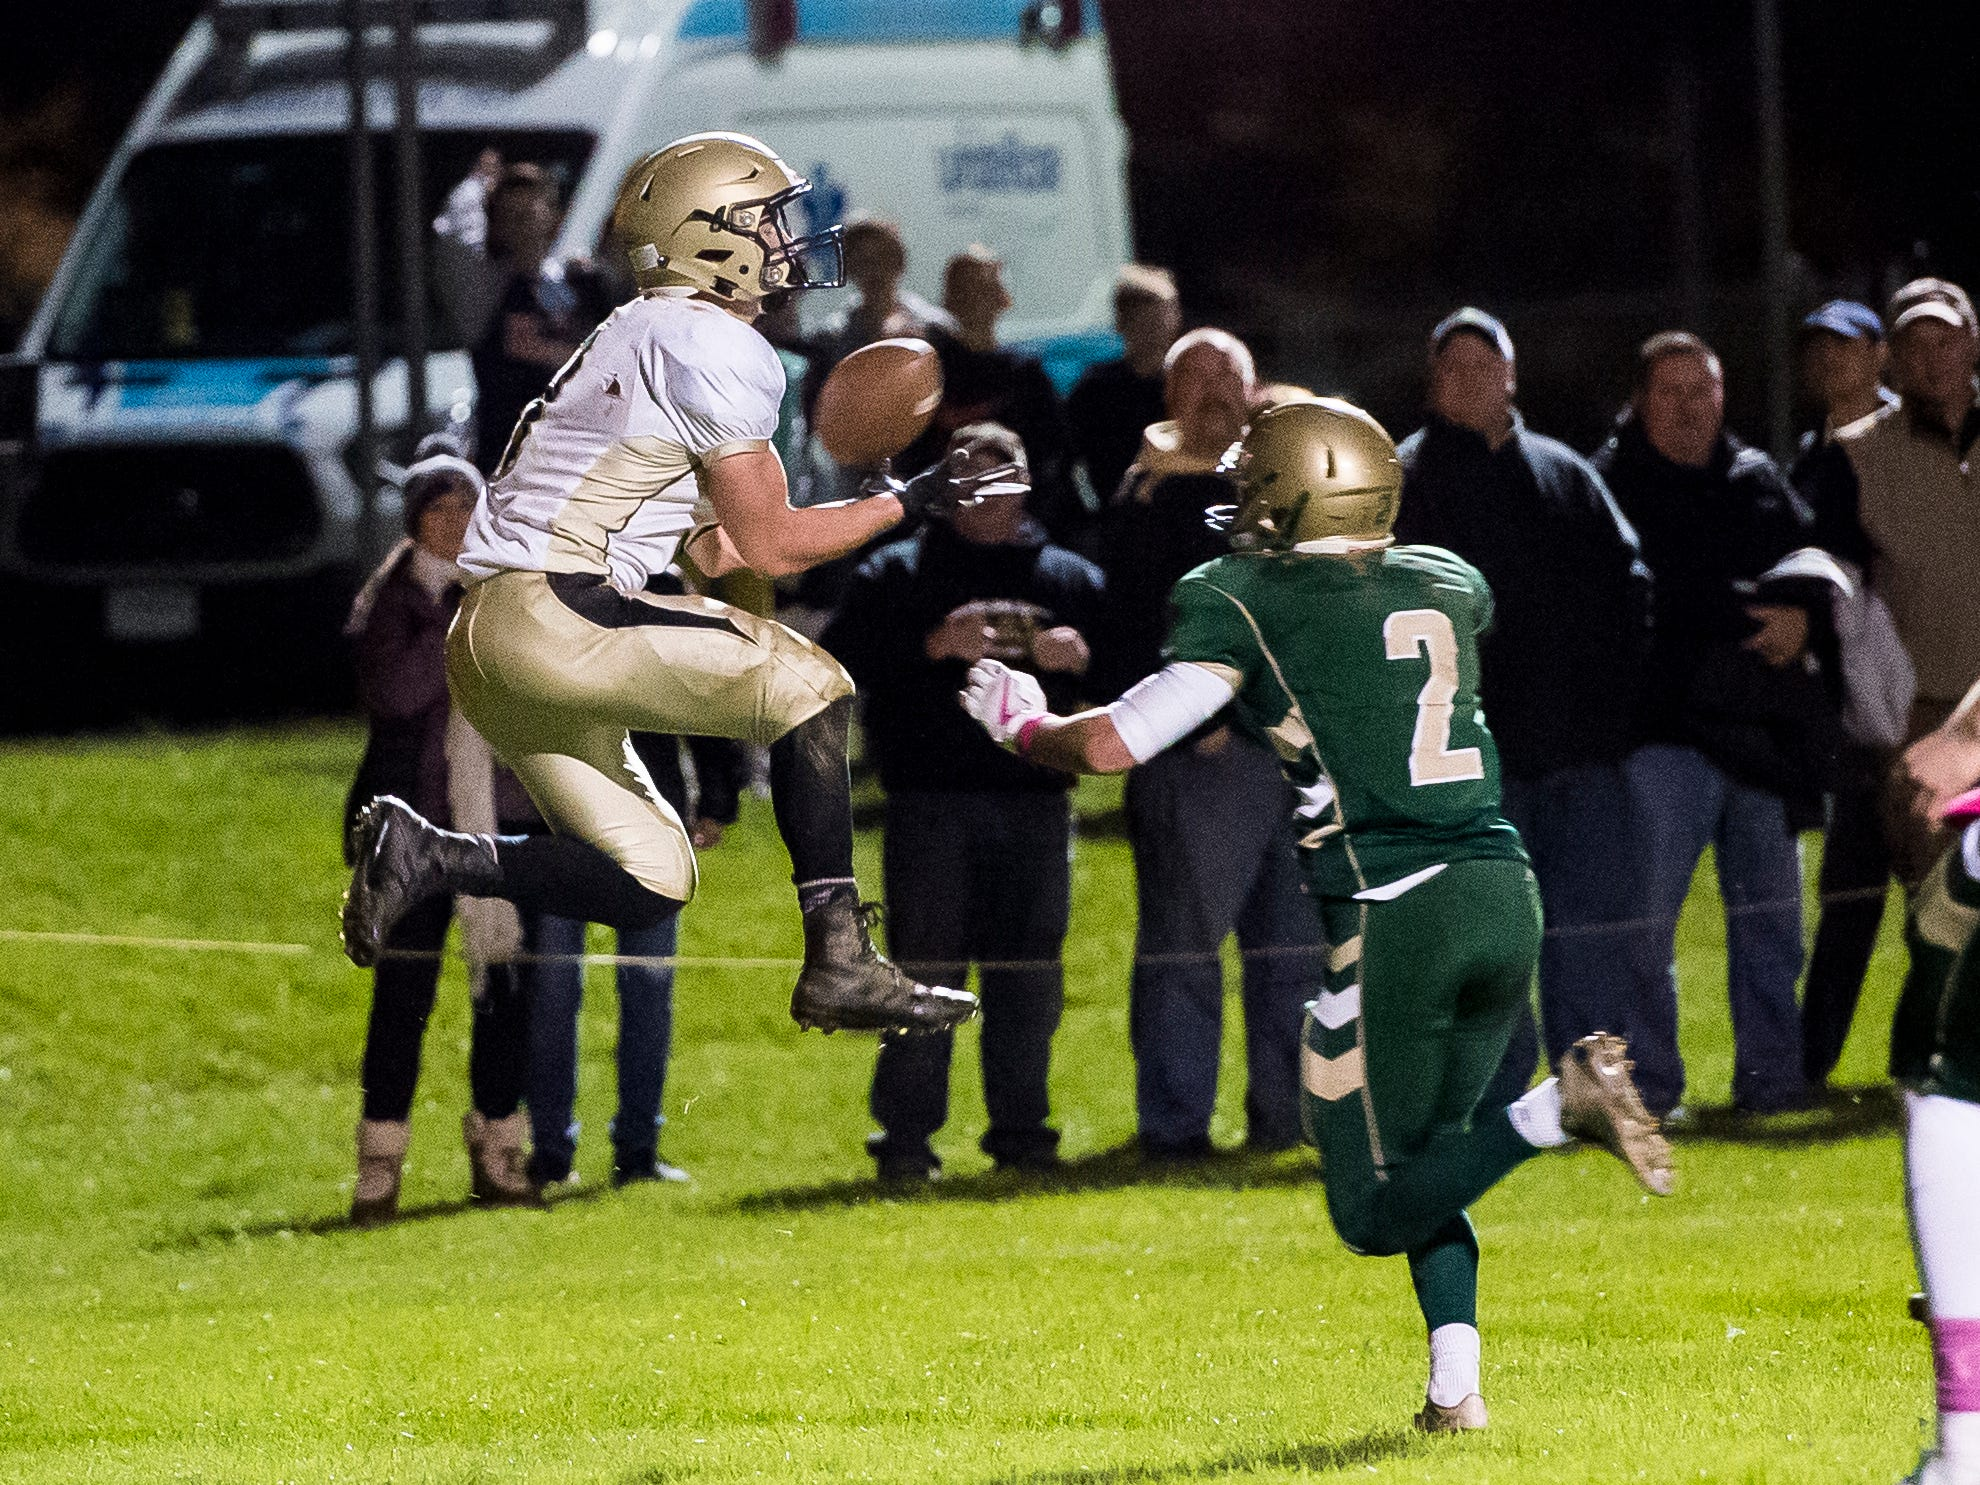 Delone Catholic's Logan Brown leaps in the air to catch to catch a pass and score a touchdown against York Catholic on Friday, October 19, 2018. The Squires fell 35-7.